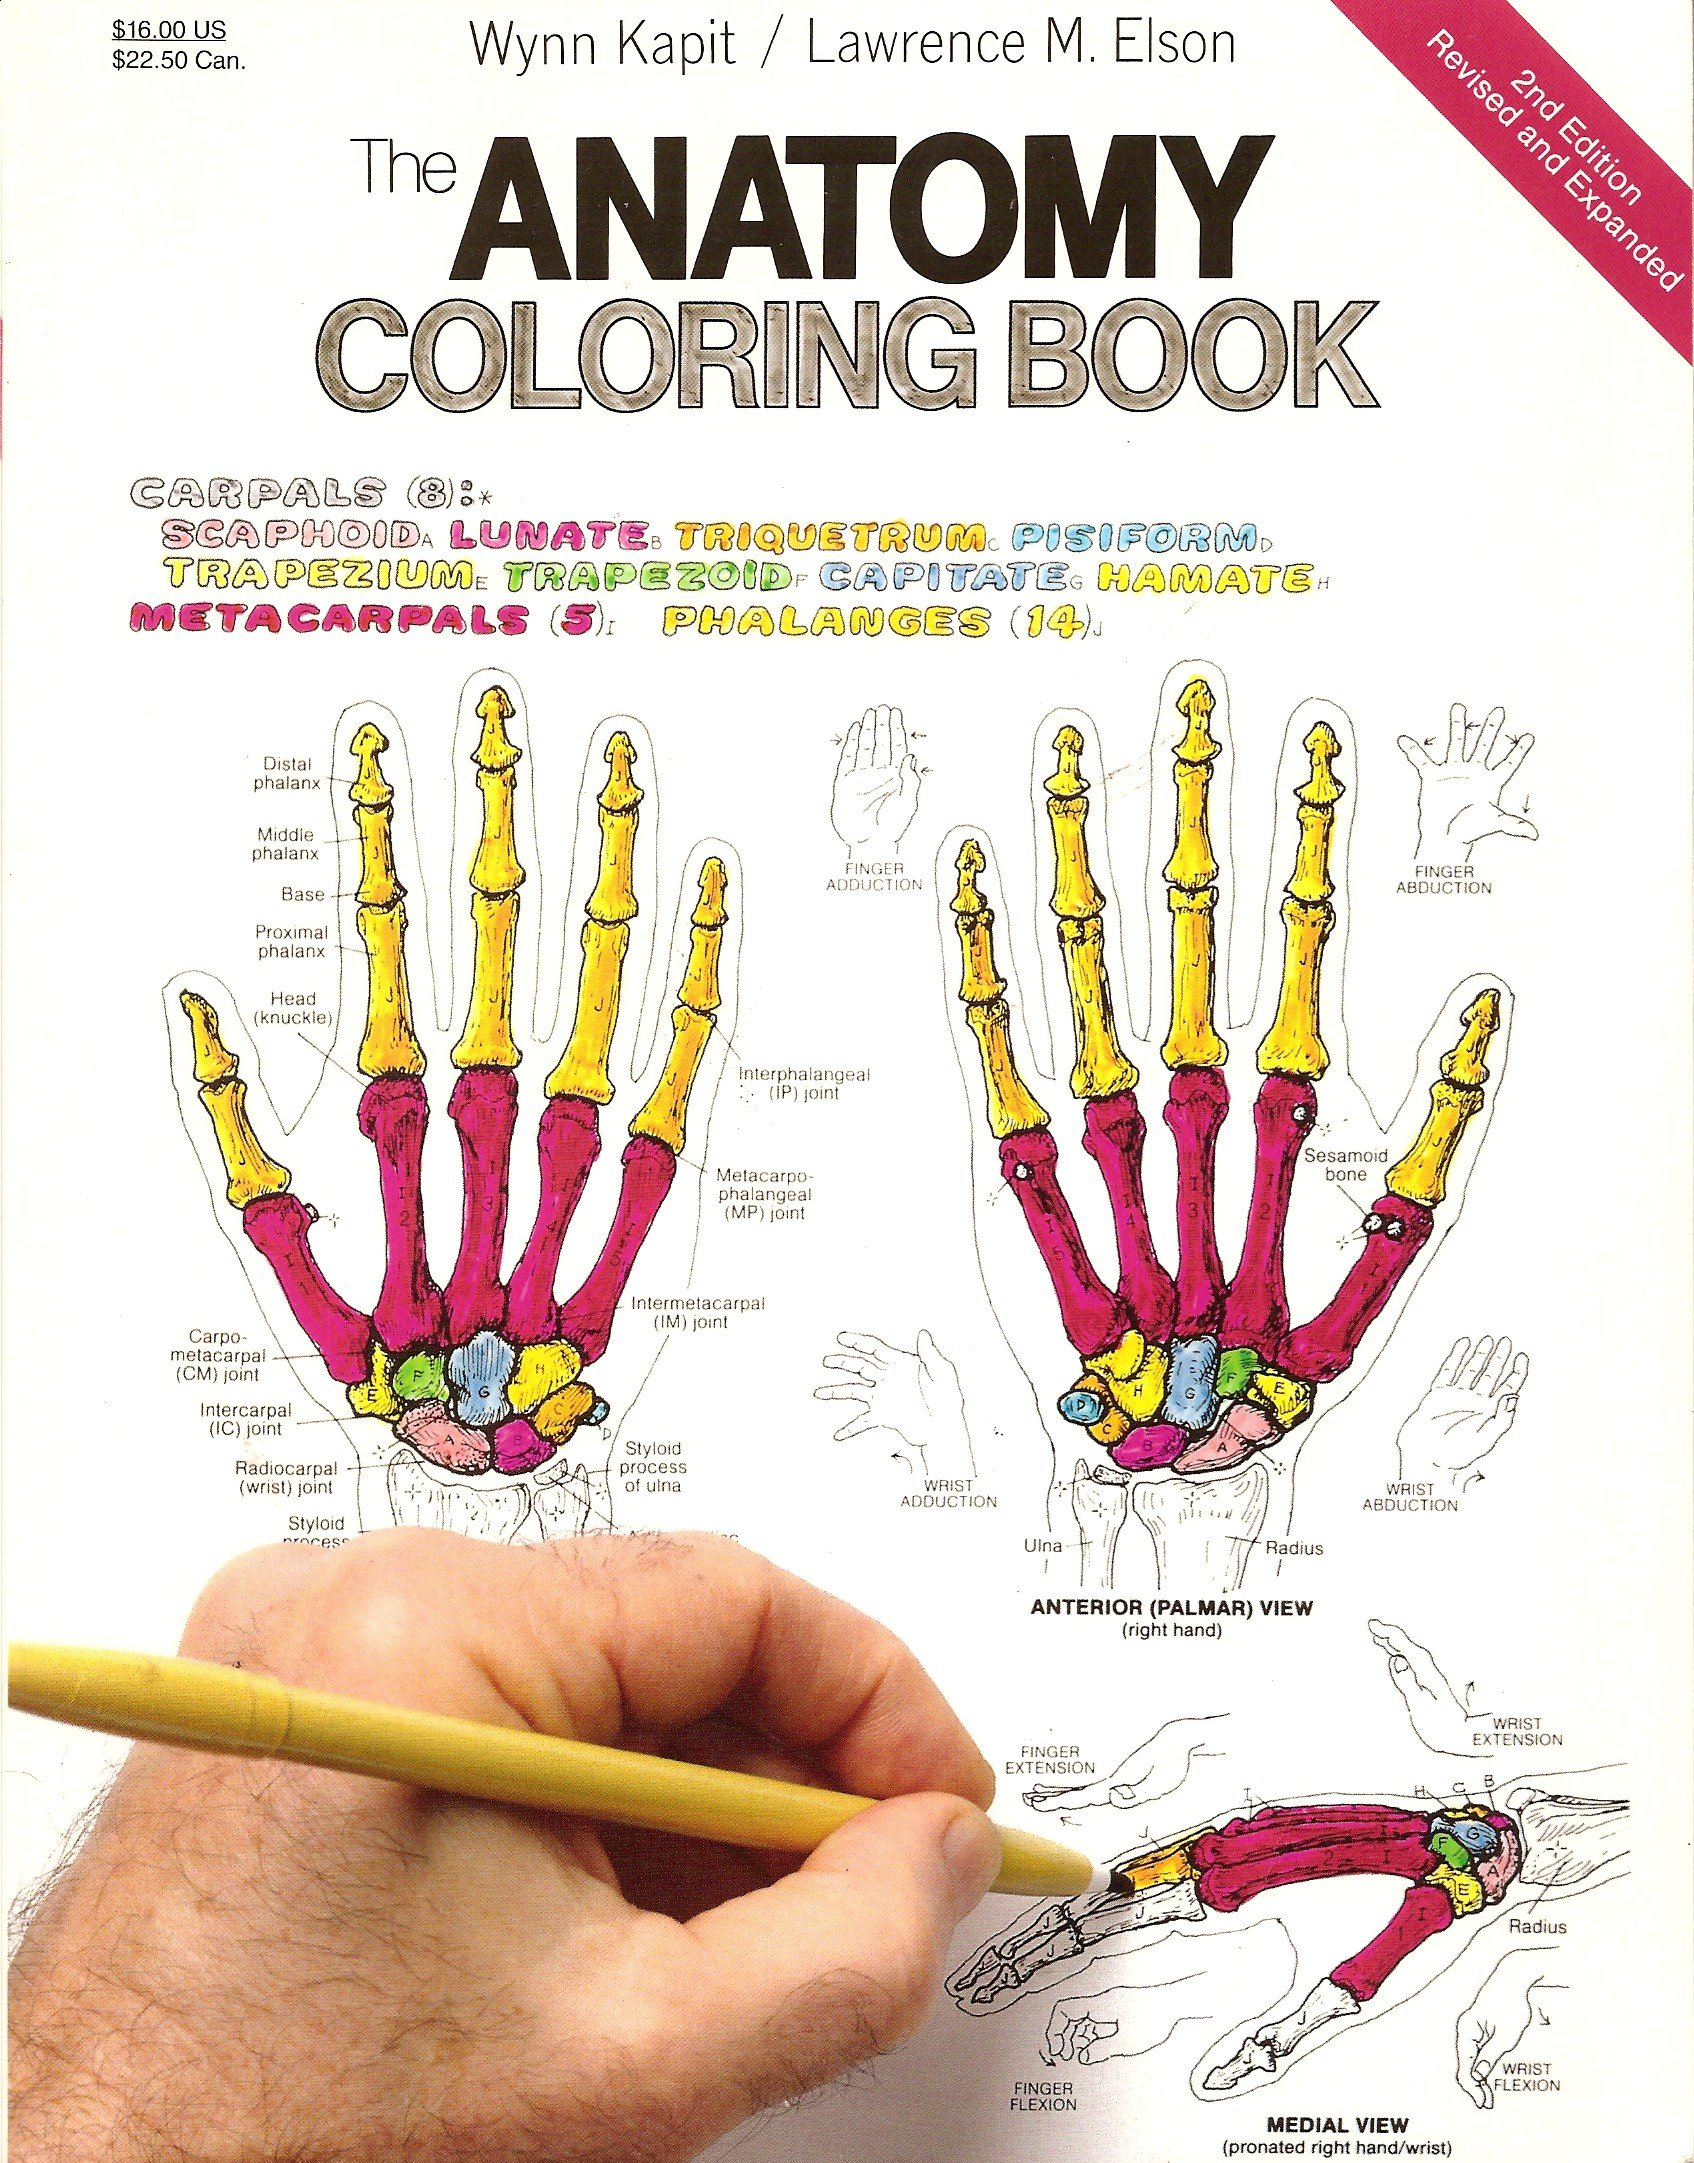 The anatomy coloring book wynn kapit - The Anatomy Coloring Book Second Edition Revised And Expanded Kapit Elson Amazon Com Books